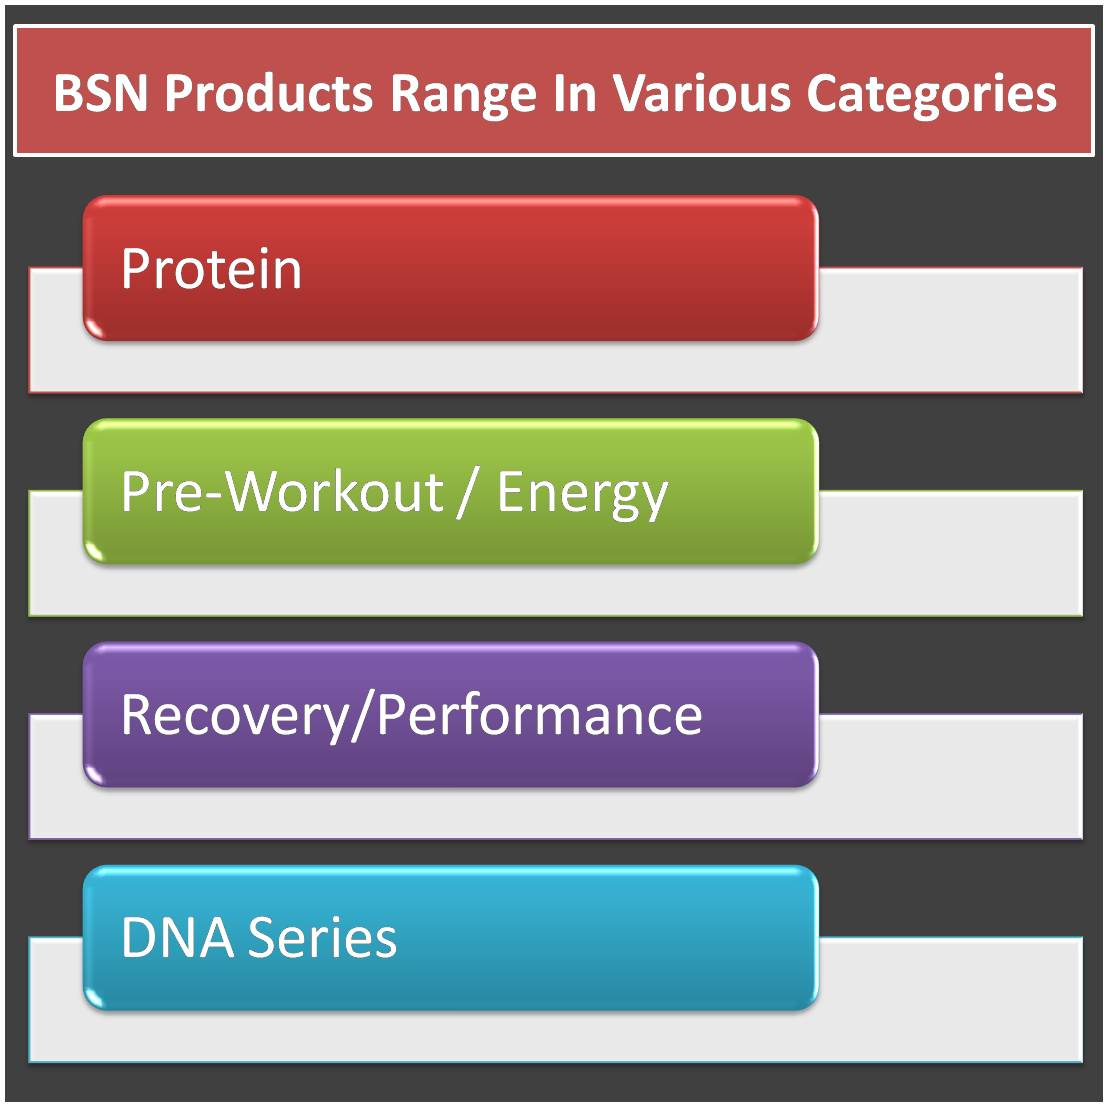 The products range in various categories